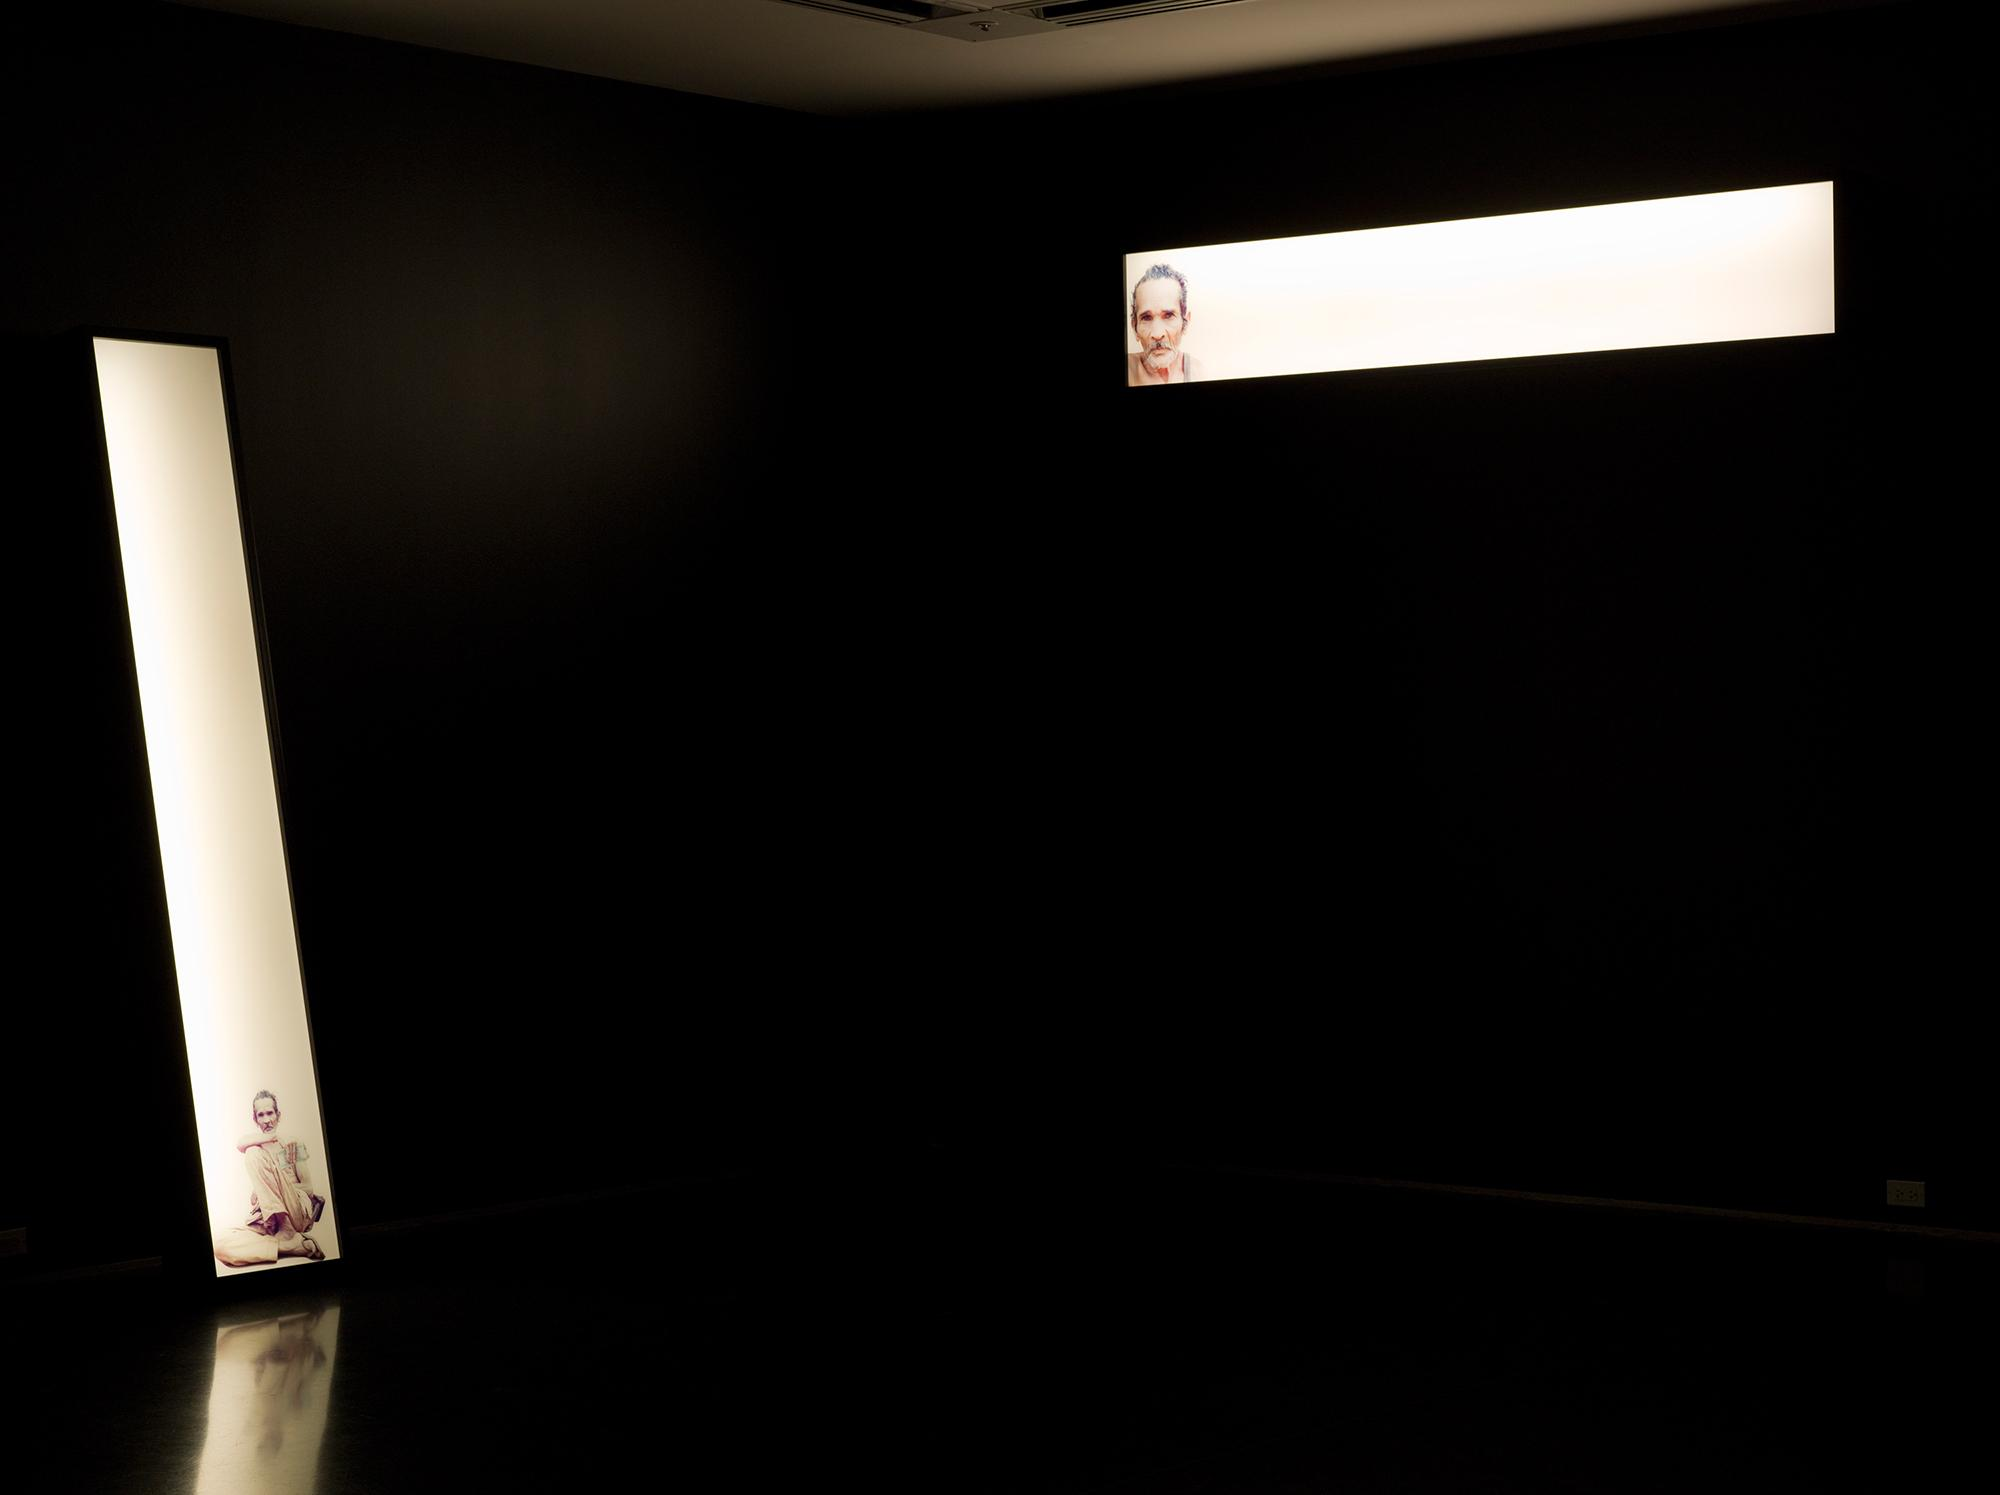 Two narrow glowing rectangles depicting a man illuminate a pitch-black room. The horizontal box on the right hangs high on the wall; the other leans vertically against the wall to the left.